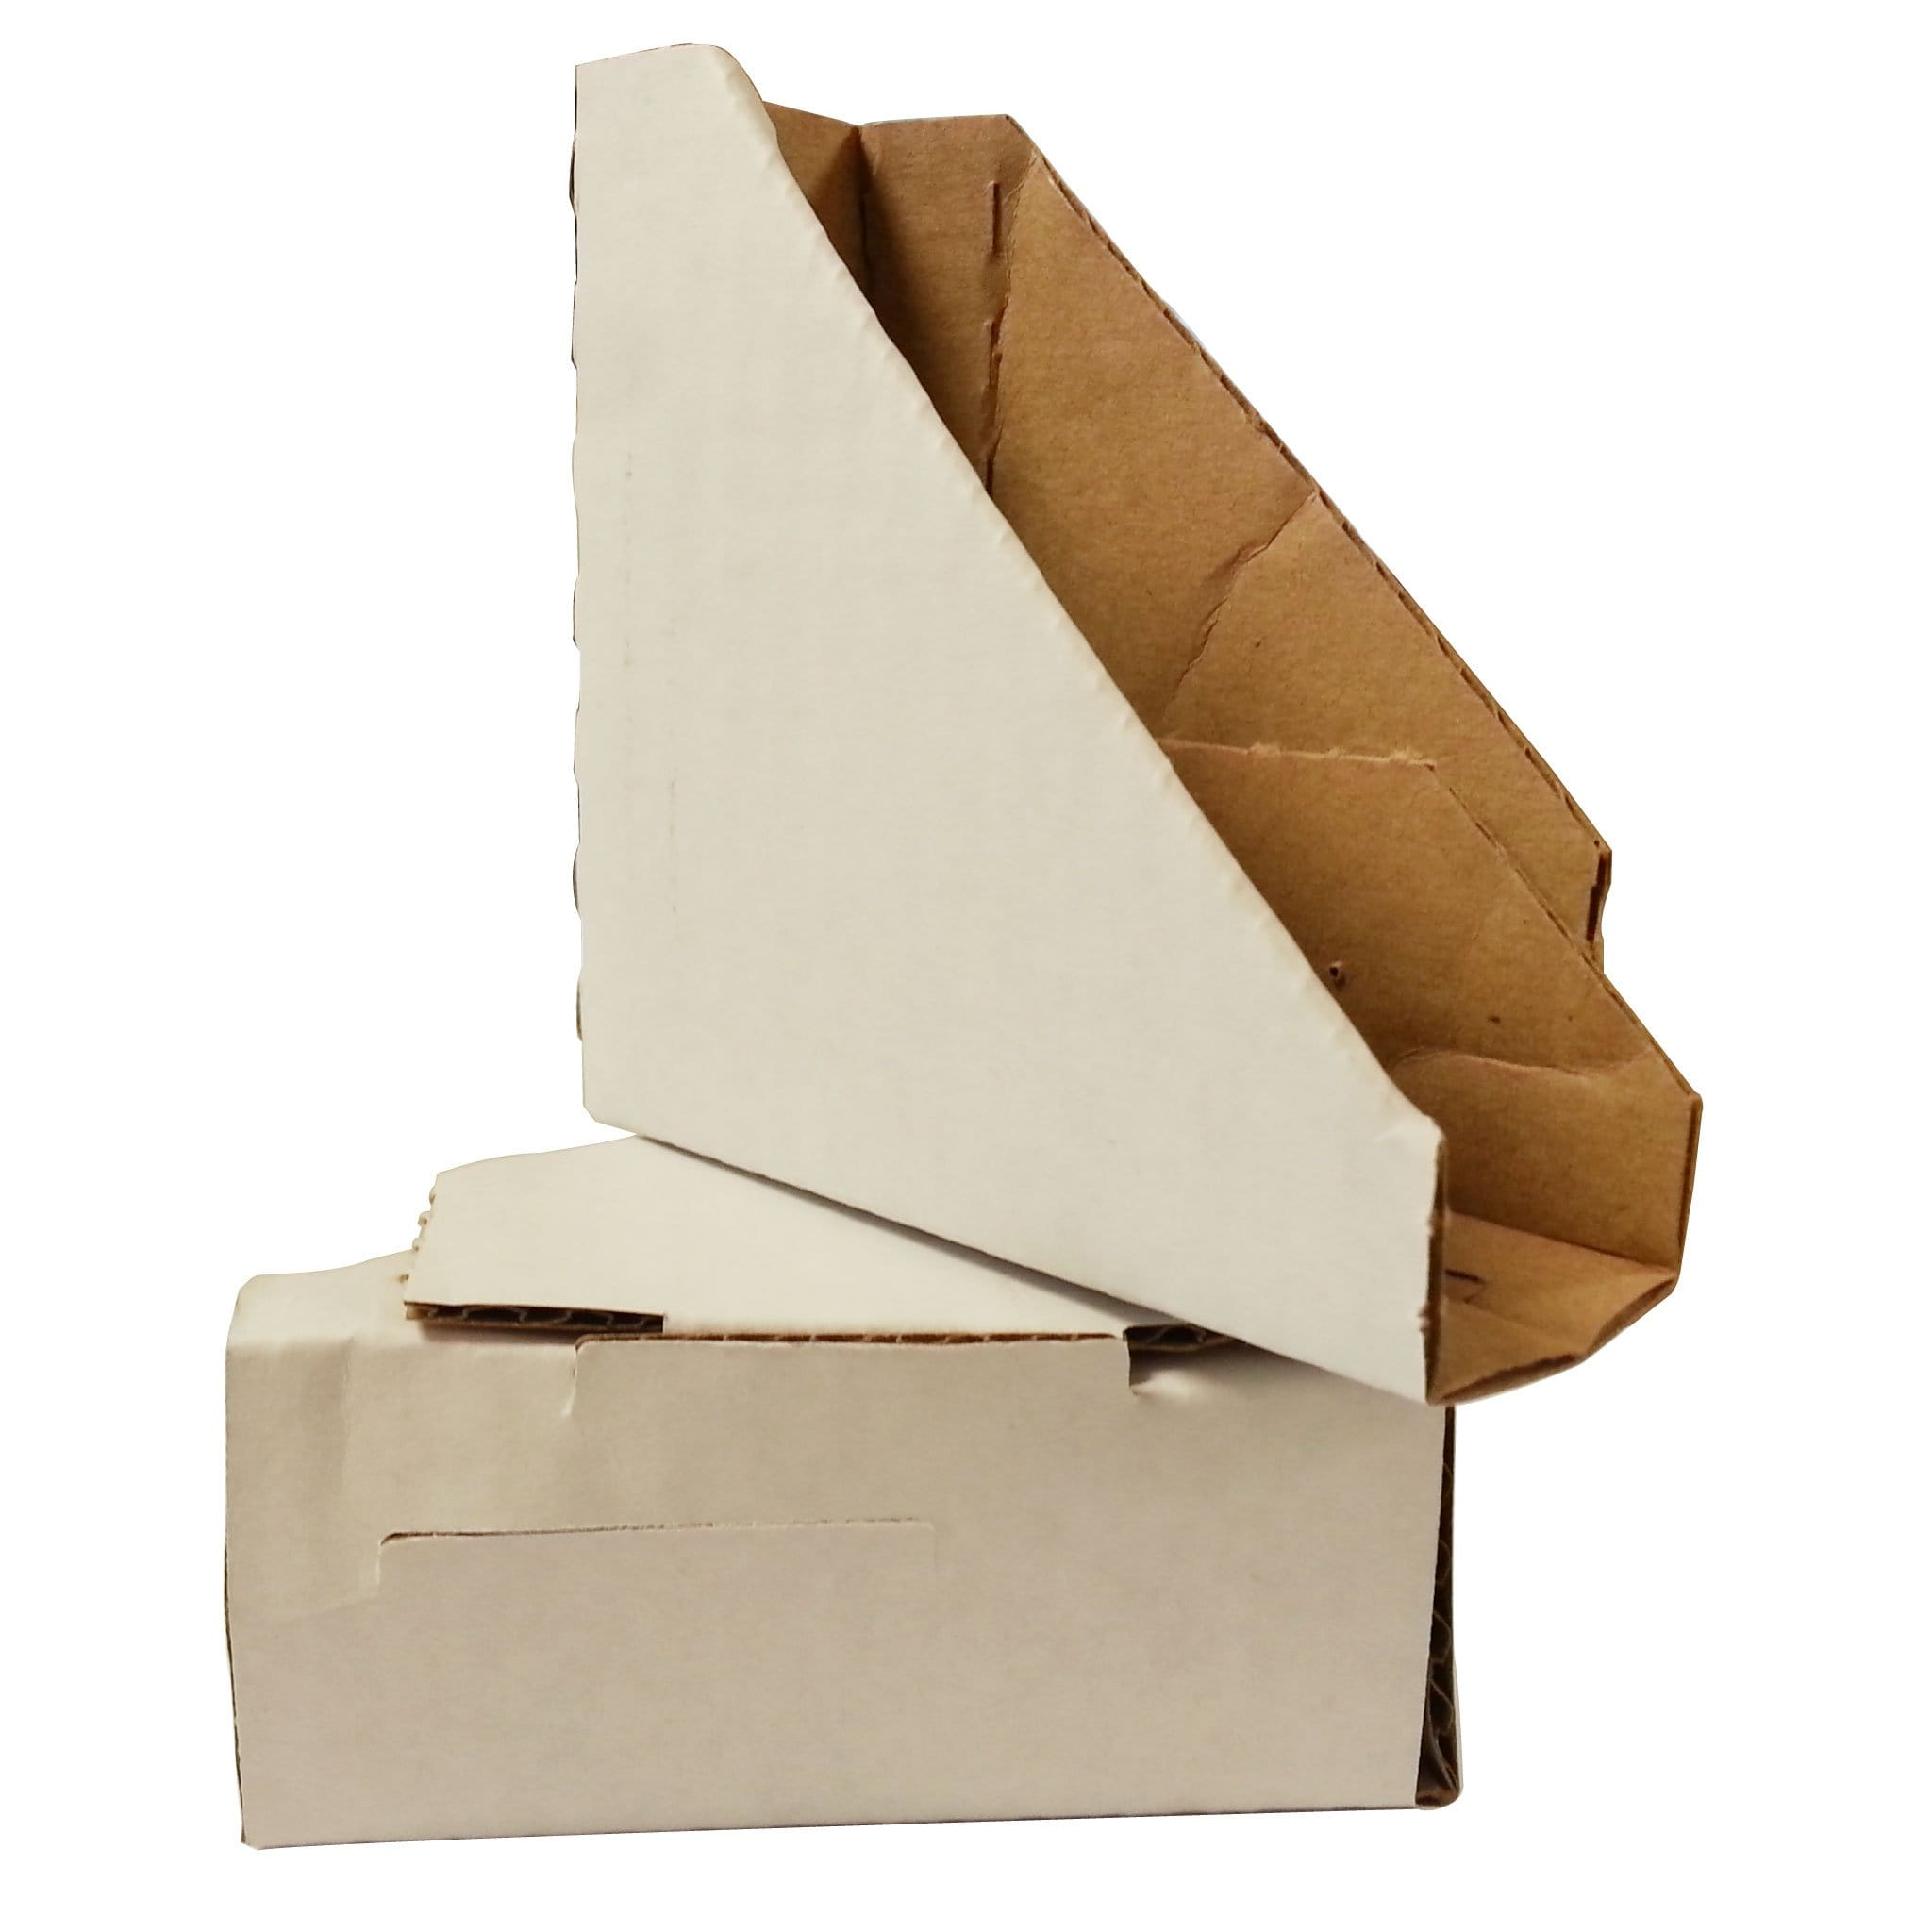 Corrugated Cardboard Protectors | 3 Position | CPM2 | Box of 200